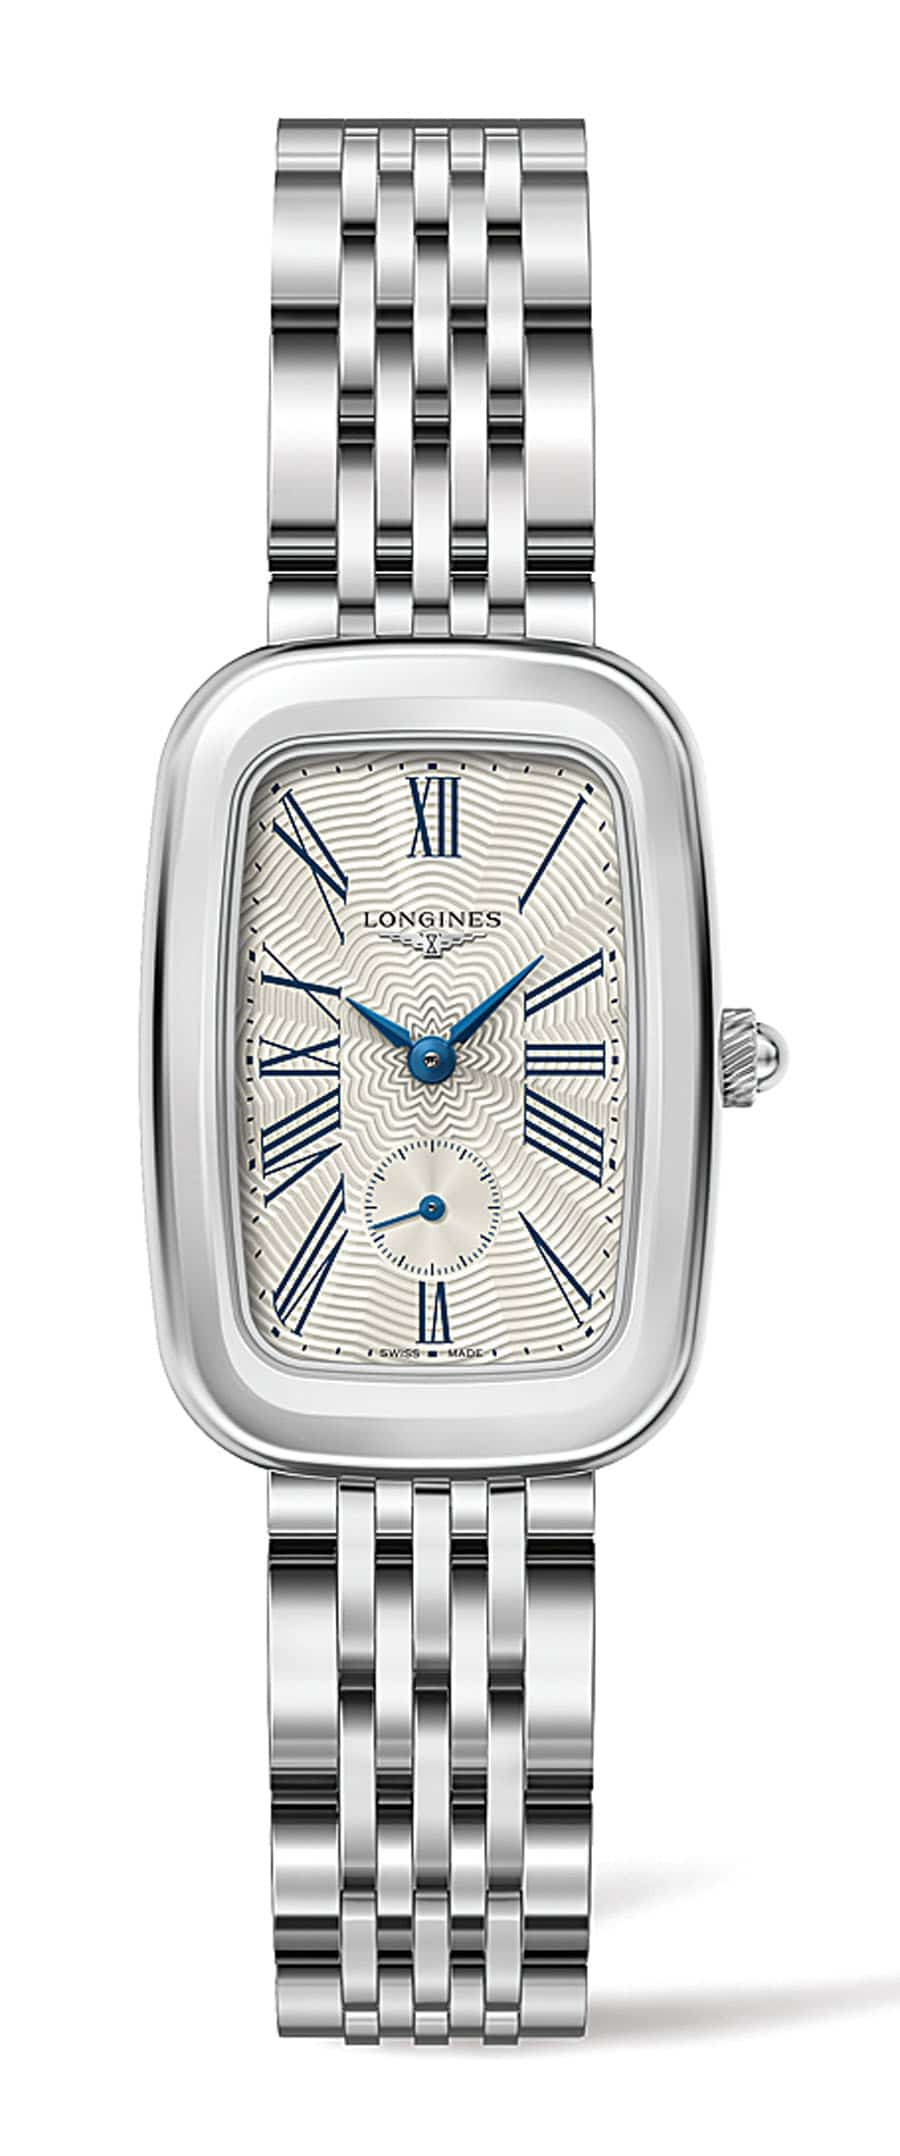 Longines: The Longines Equestrian Collection